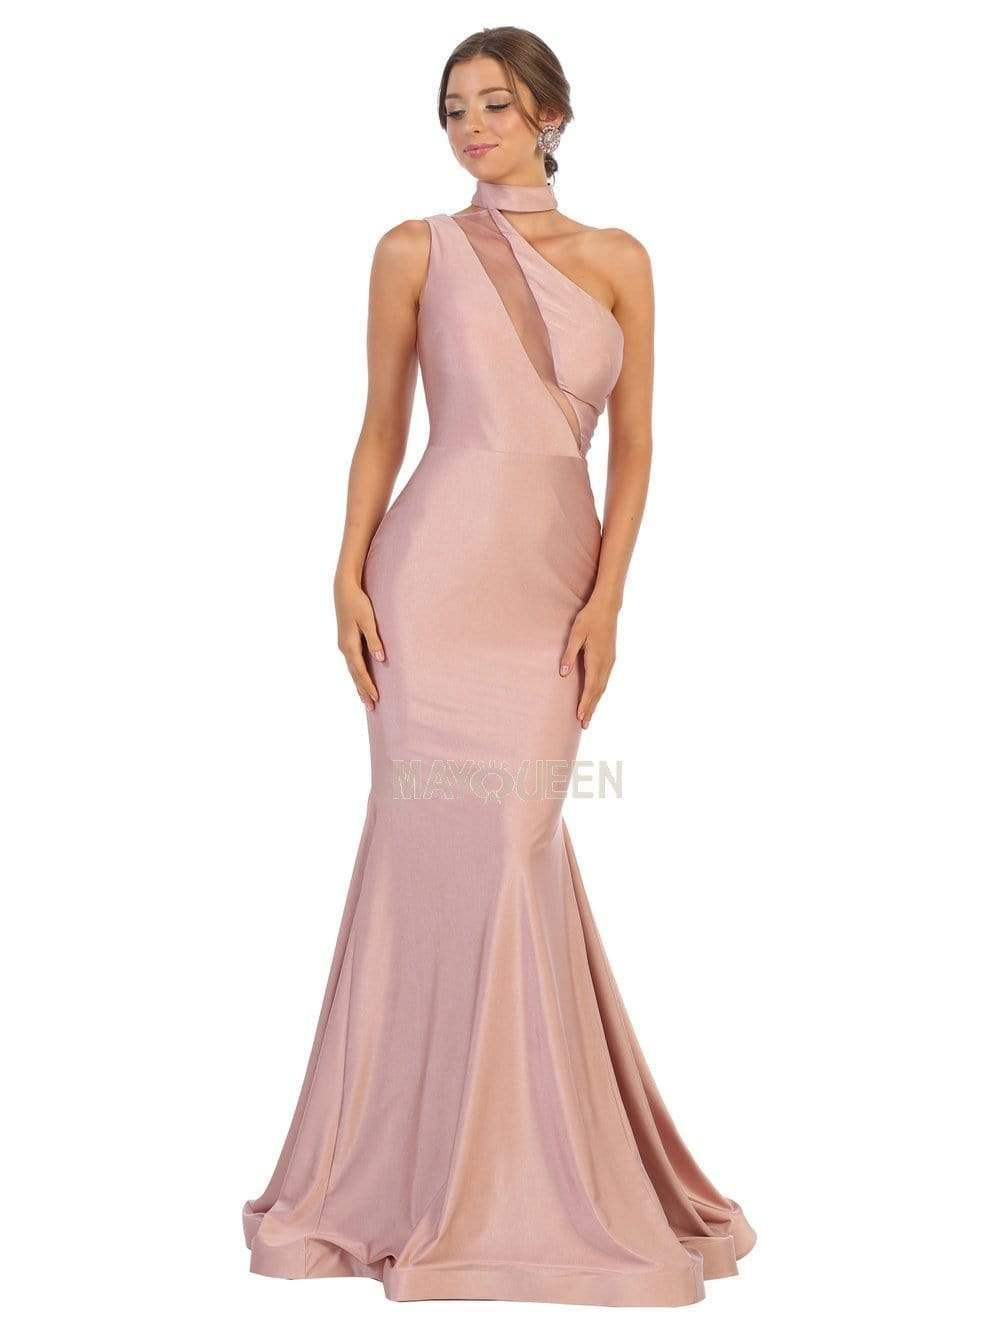 May Queen - MQ1773 Choker Ornate Illusion Paneled Trumpet Dress Evening Dresses 2 / Mauve